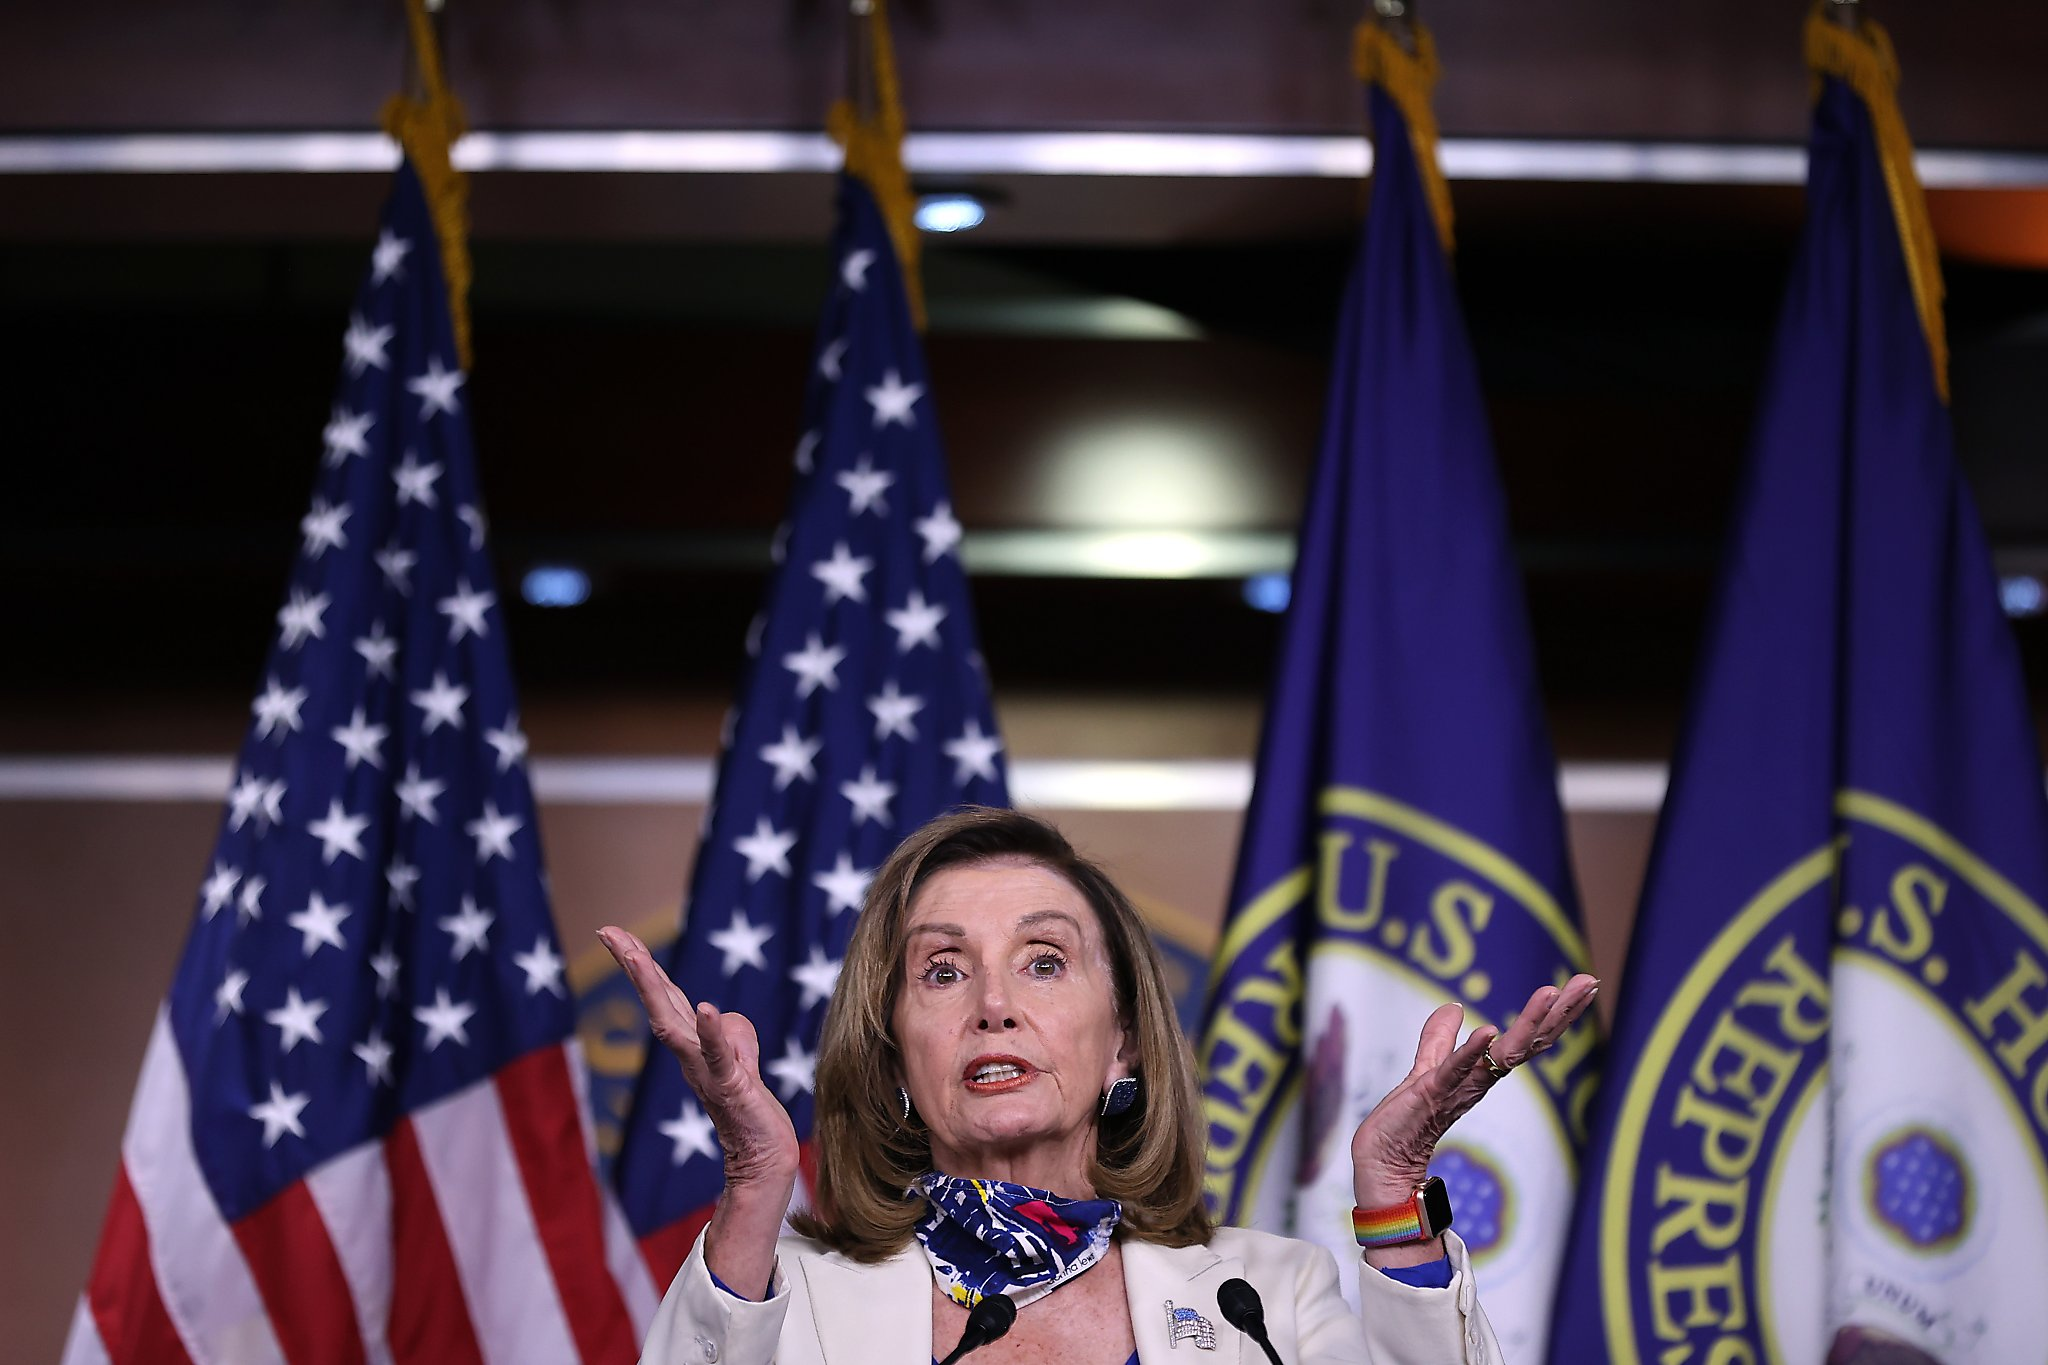 Nancy Pelosi: Trump's positive test could signal 'transition to a saner approach' on coronavirus - SFChronicle.com